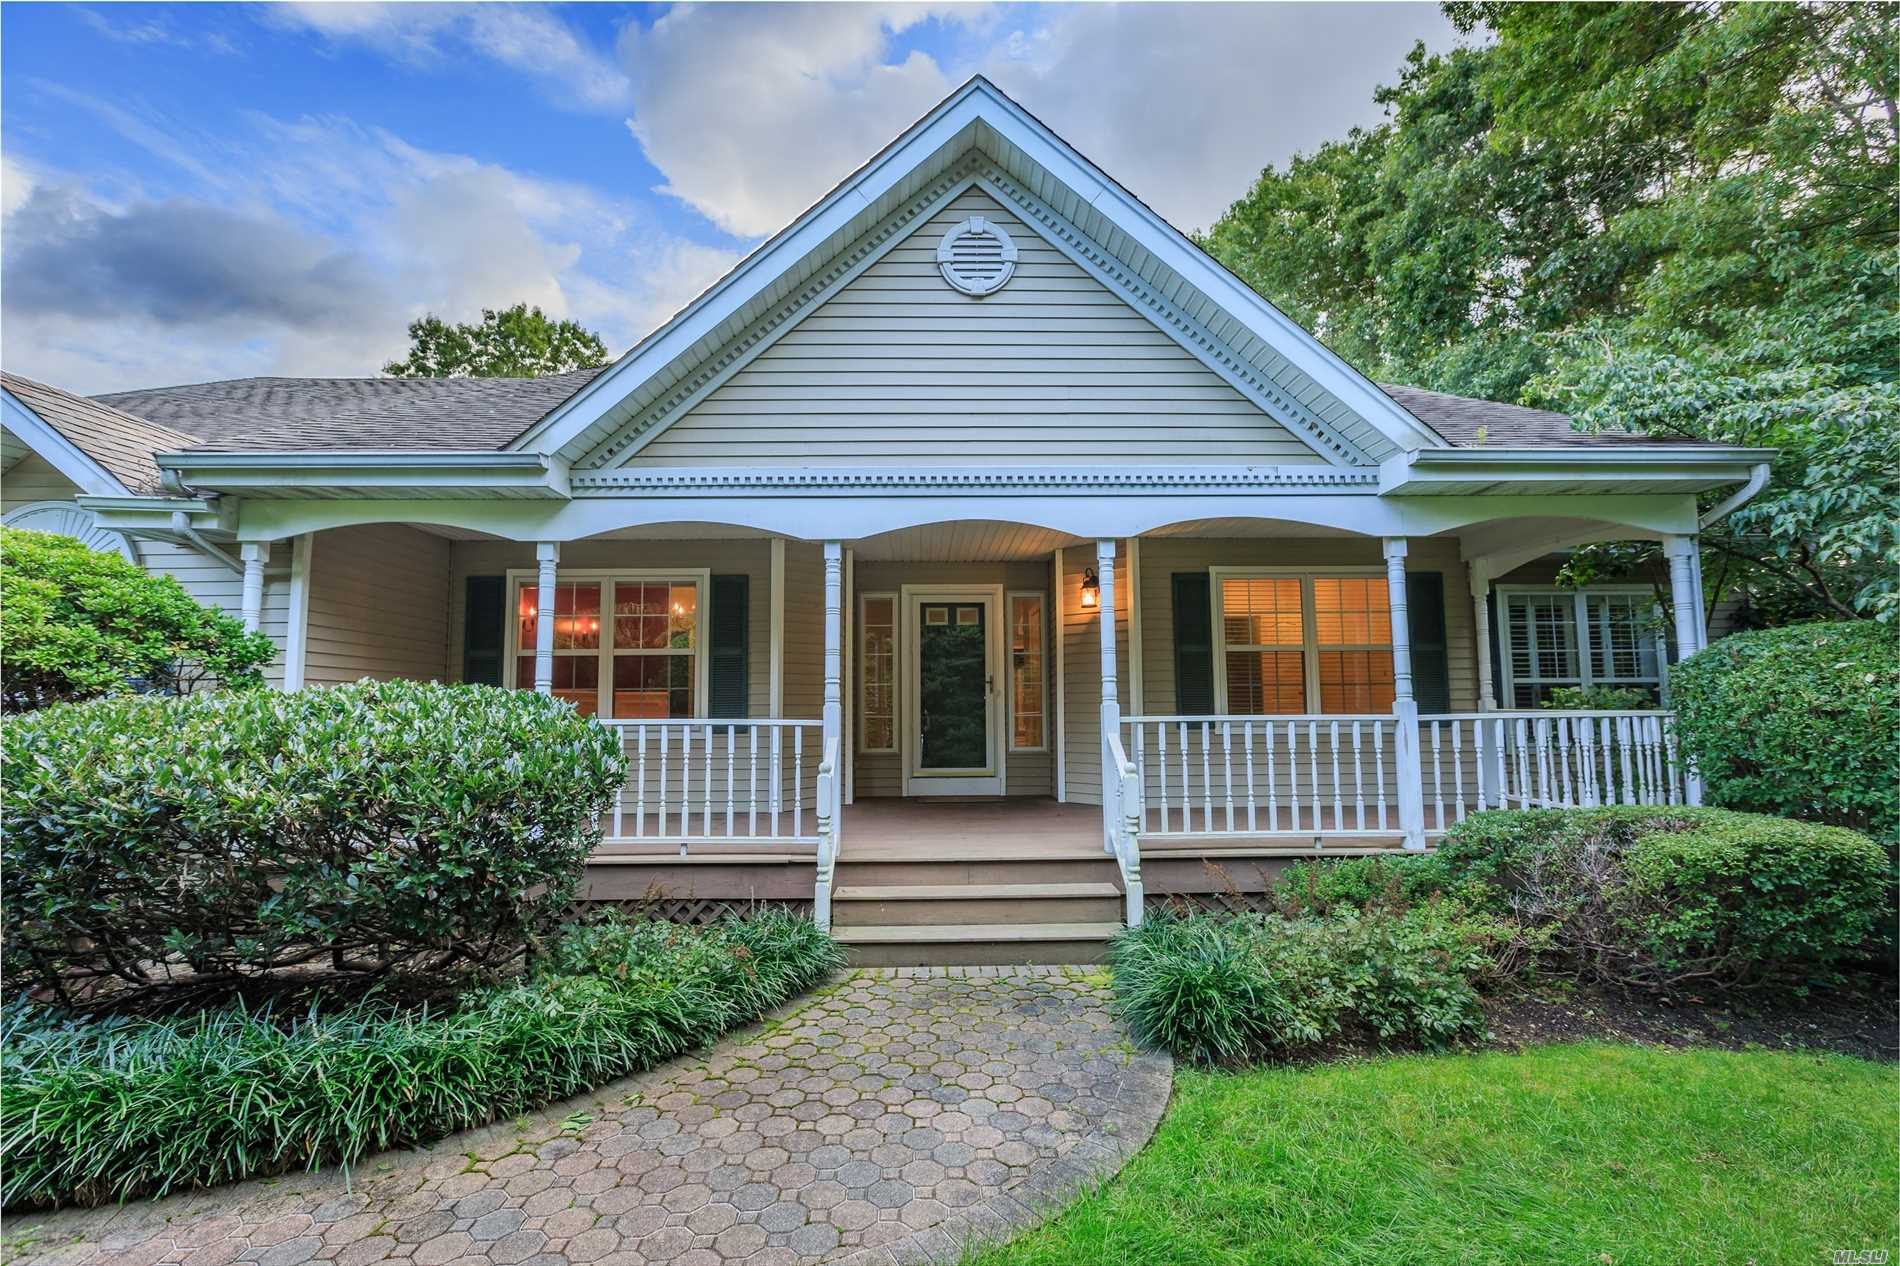 Photo of home for sale at 14 Daremy Ln, East Setauket NY